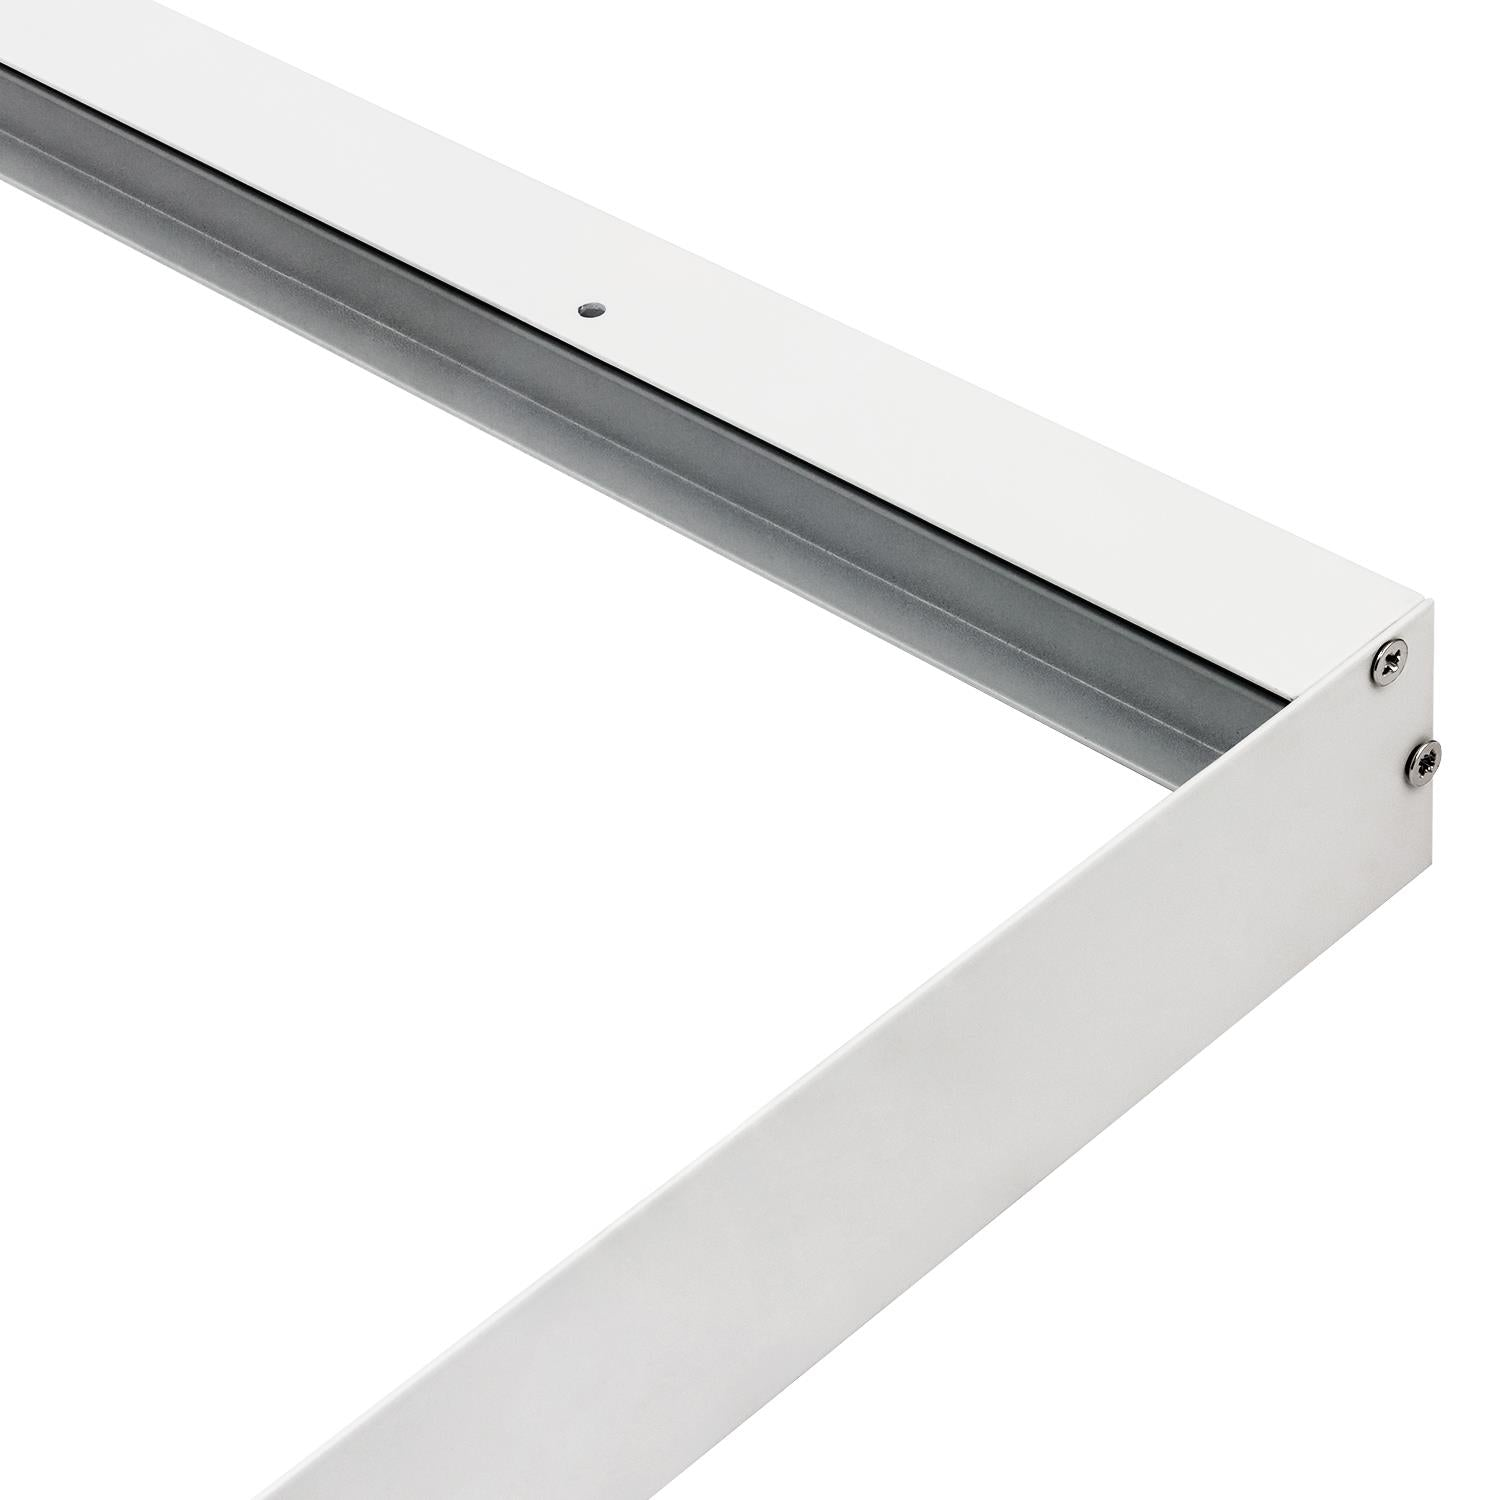 SUNLITE Ceiling Frame Kit 4 LED Flat Panel v2 - LFX/FLAT/1X4